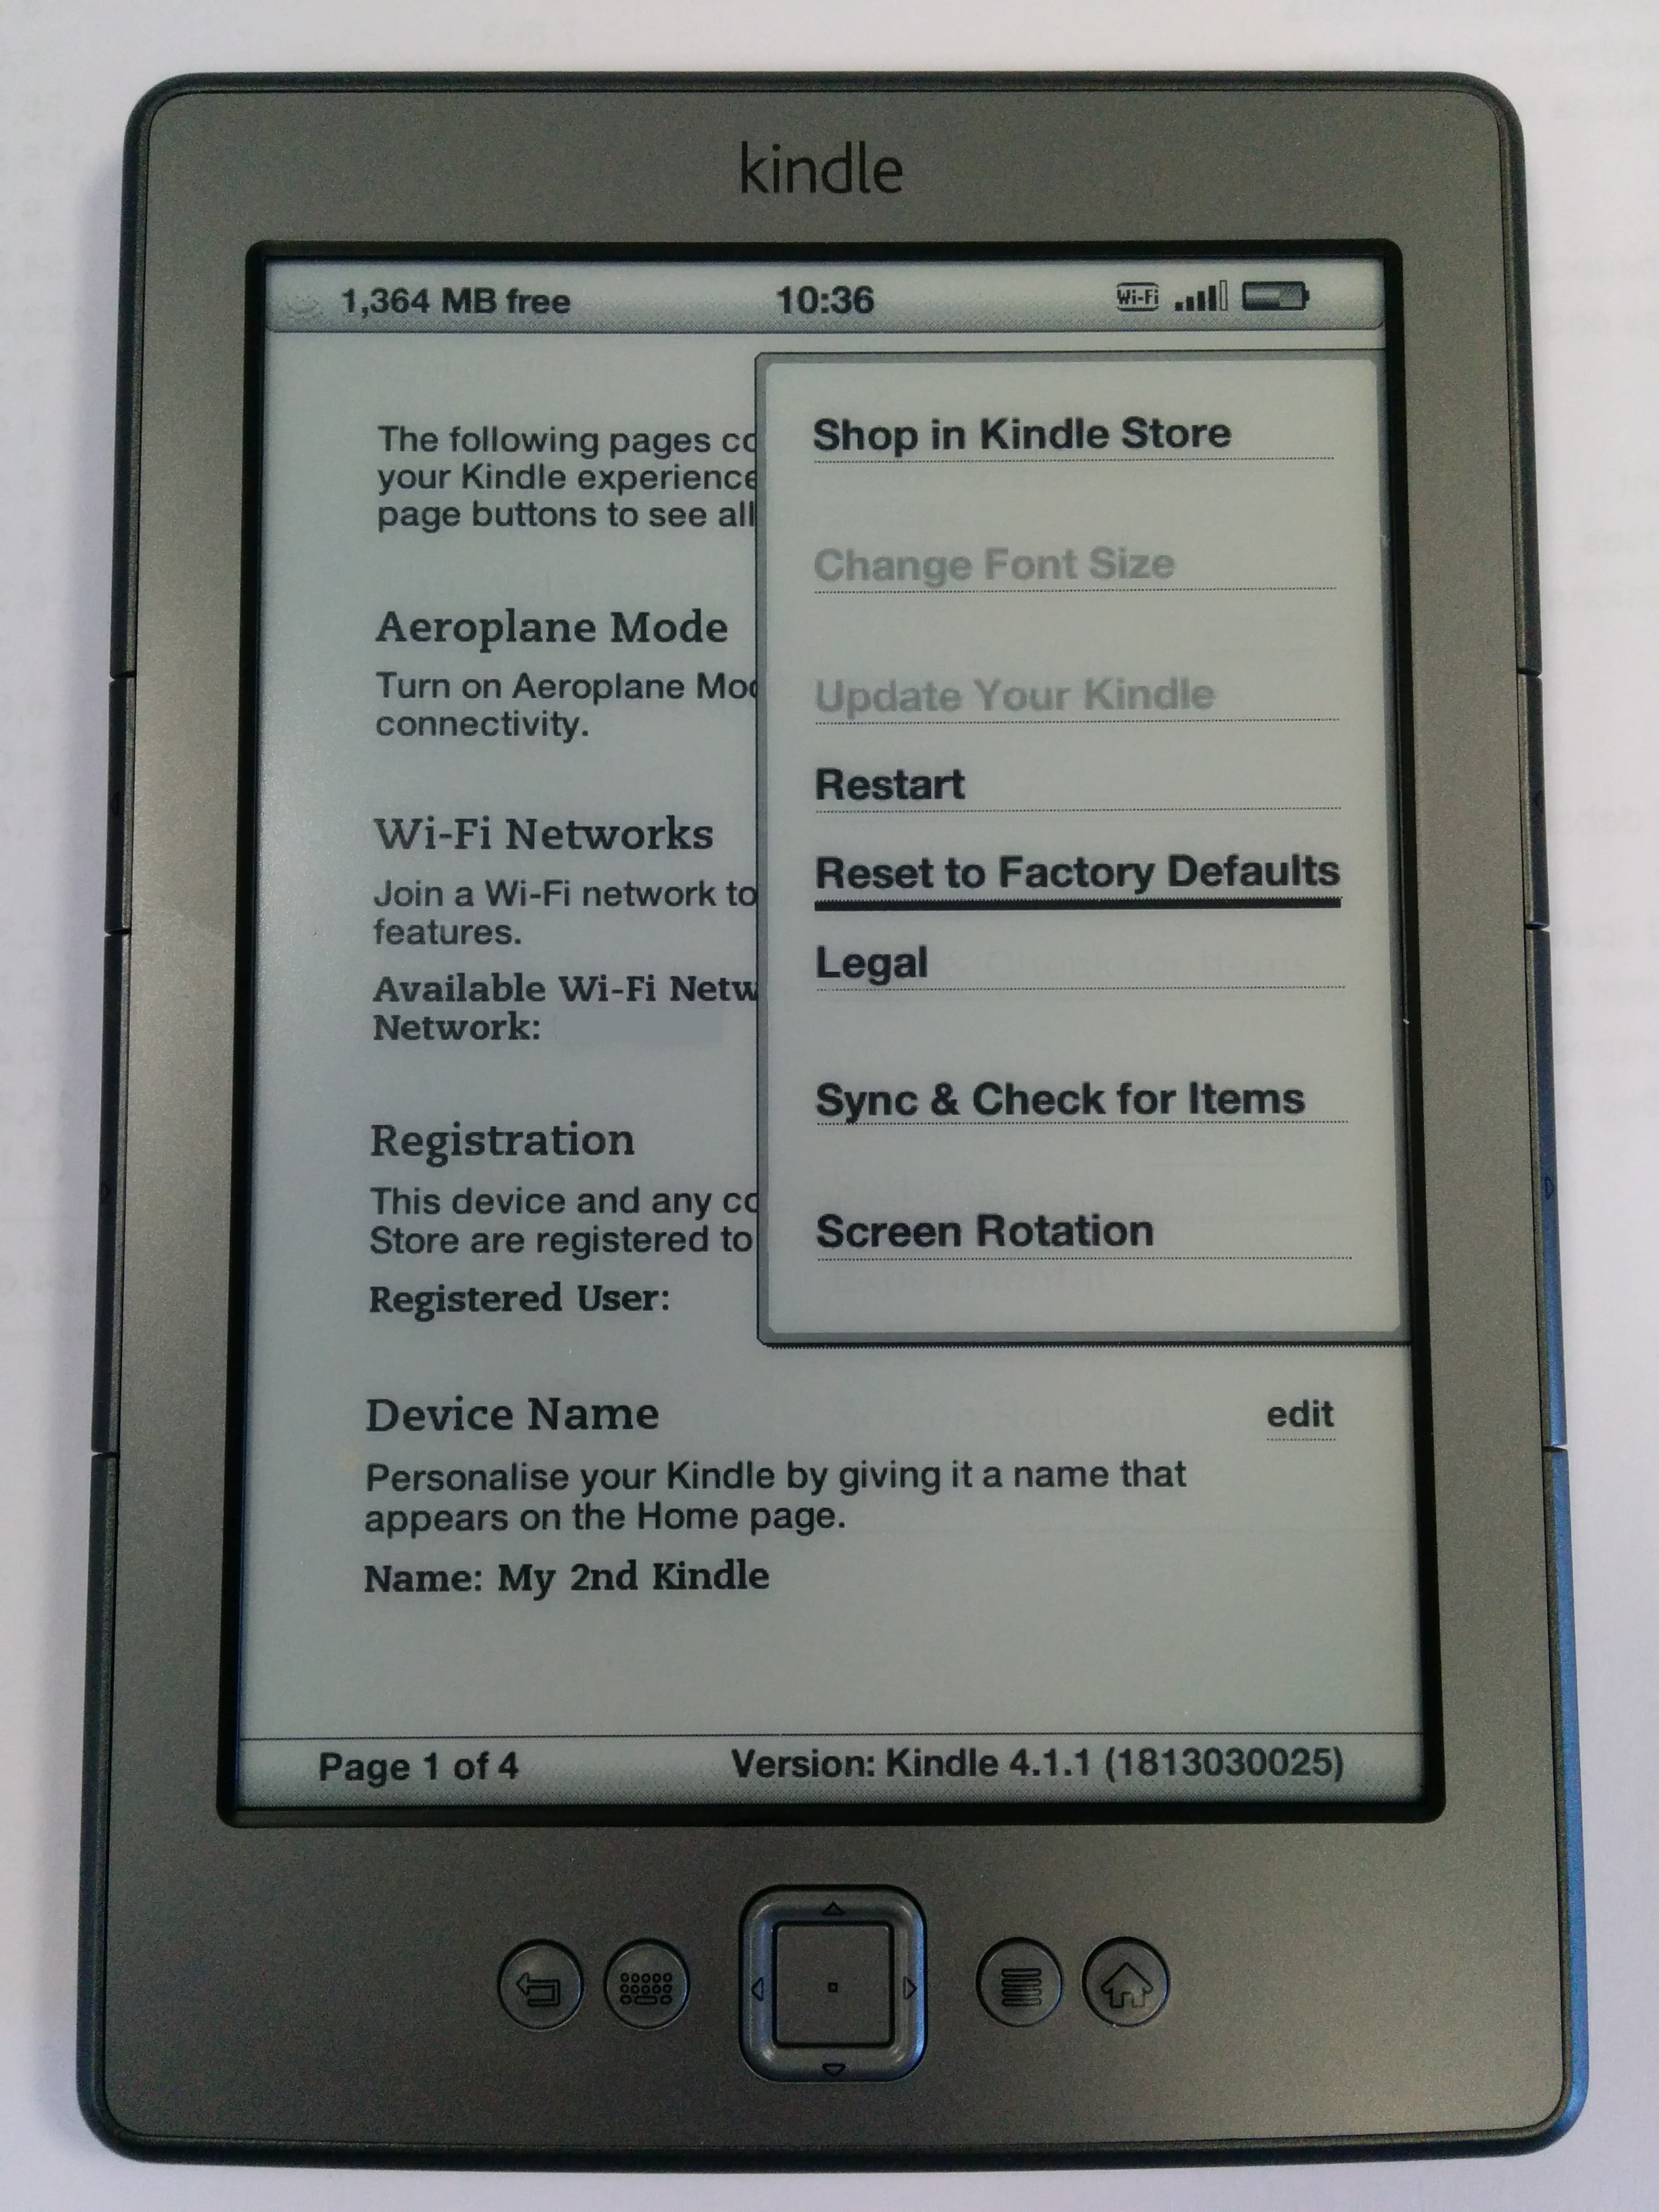 how do i read pdf files on my kindle paperwhite